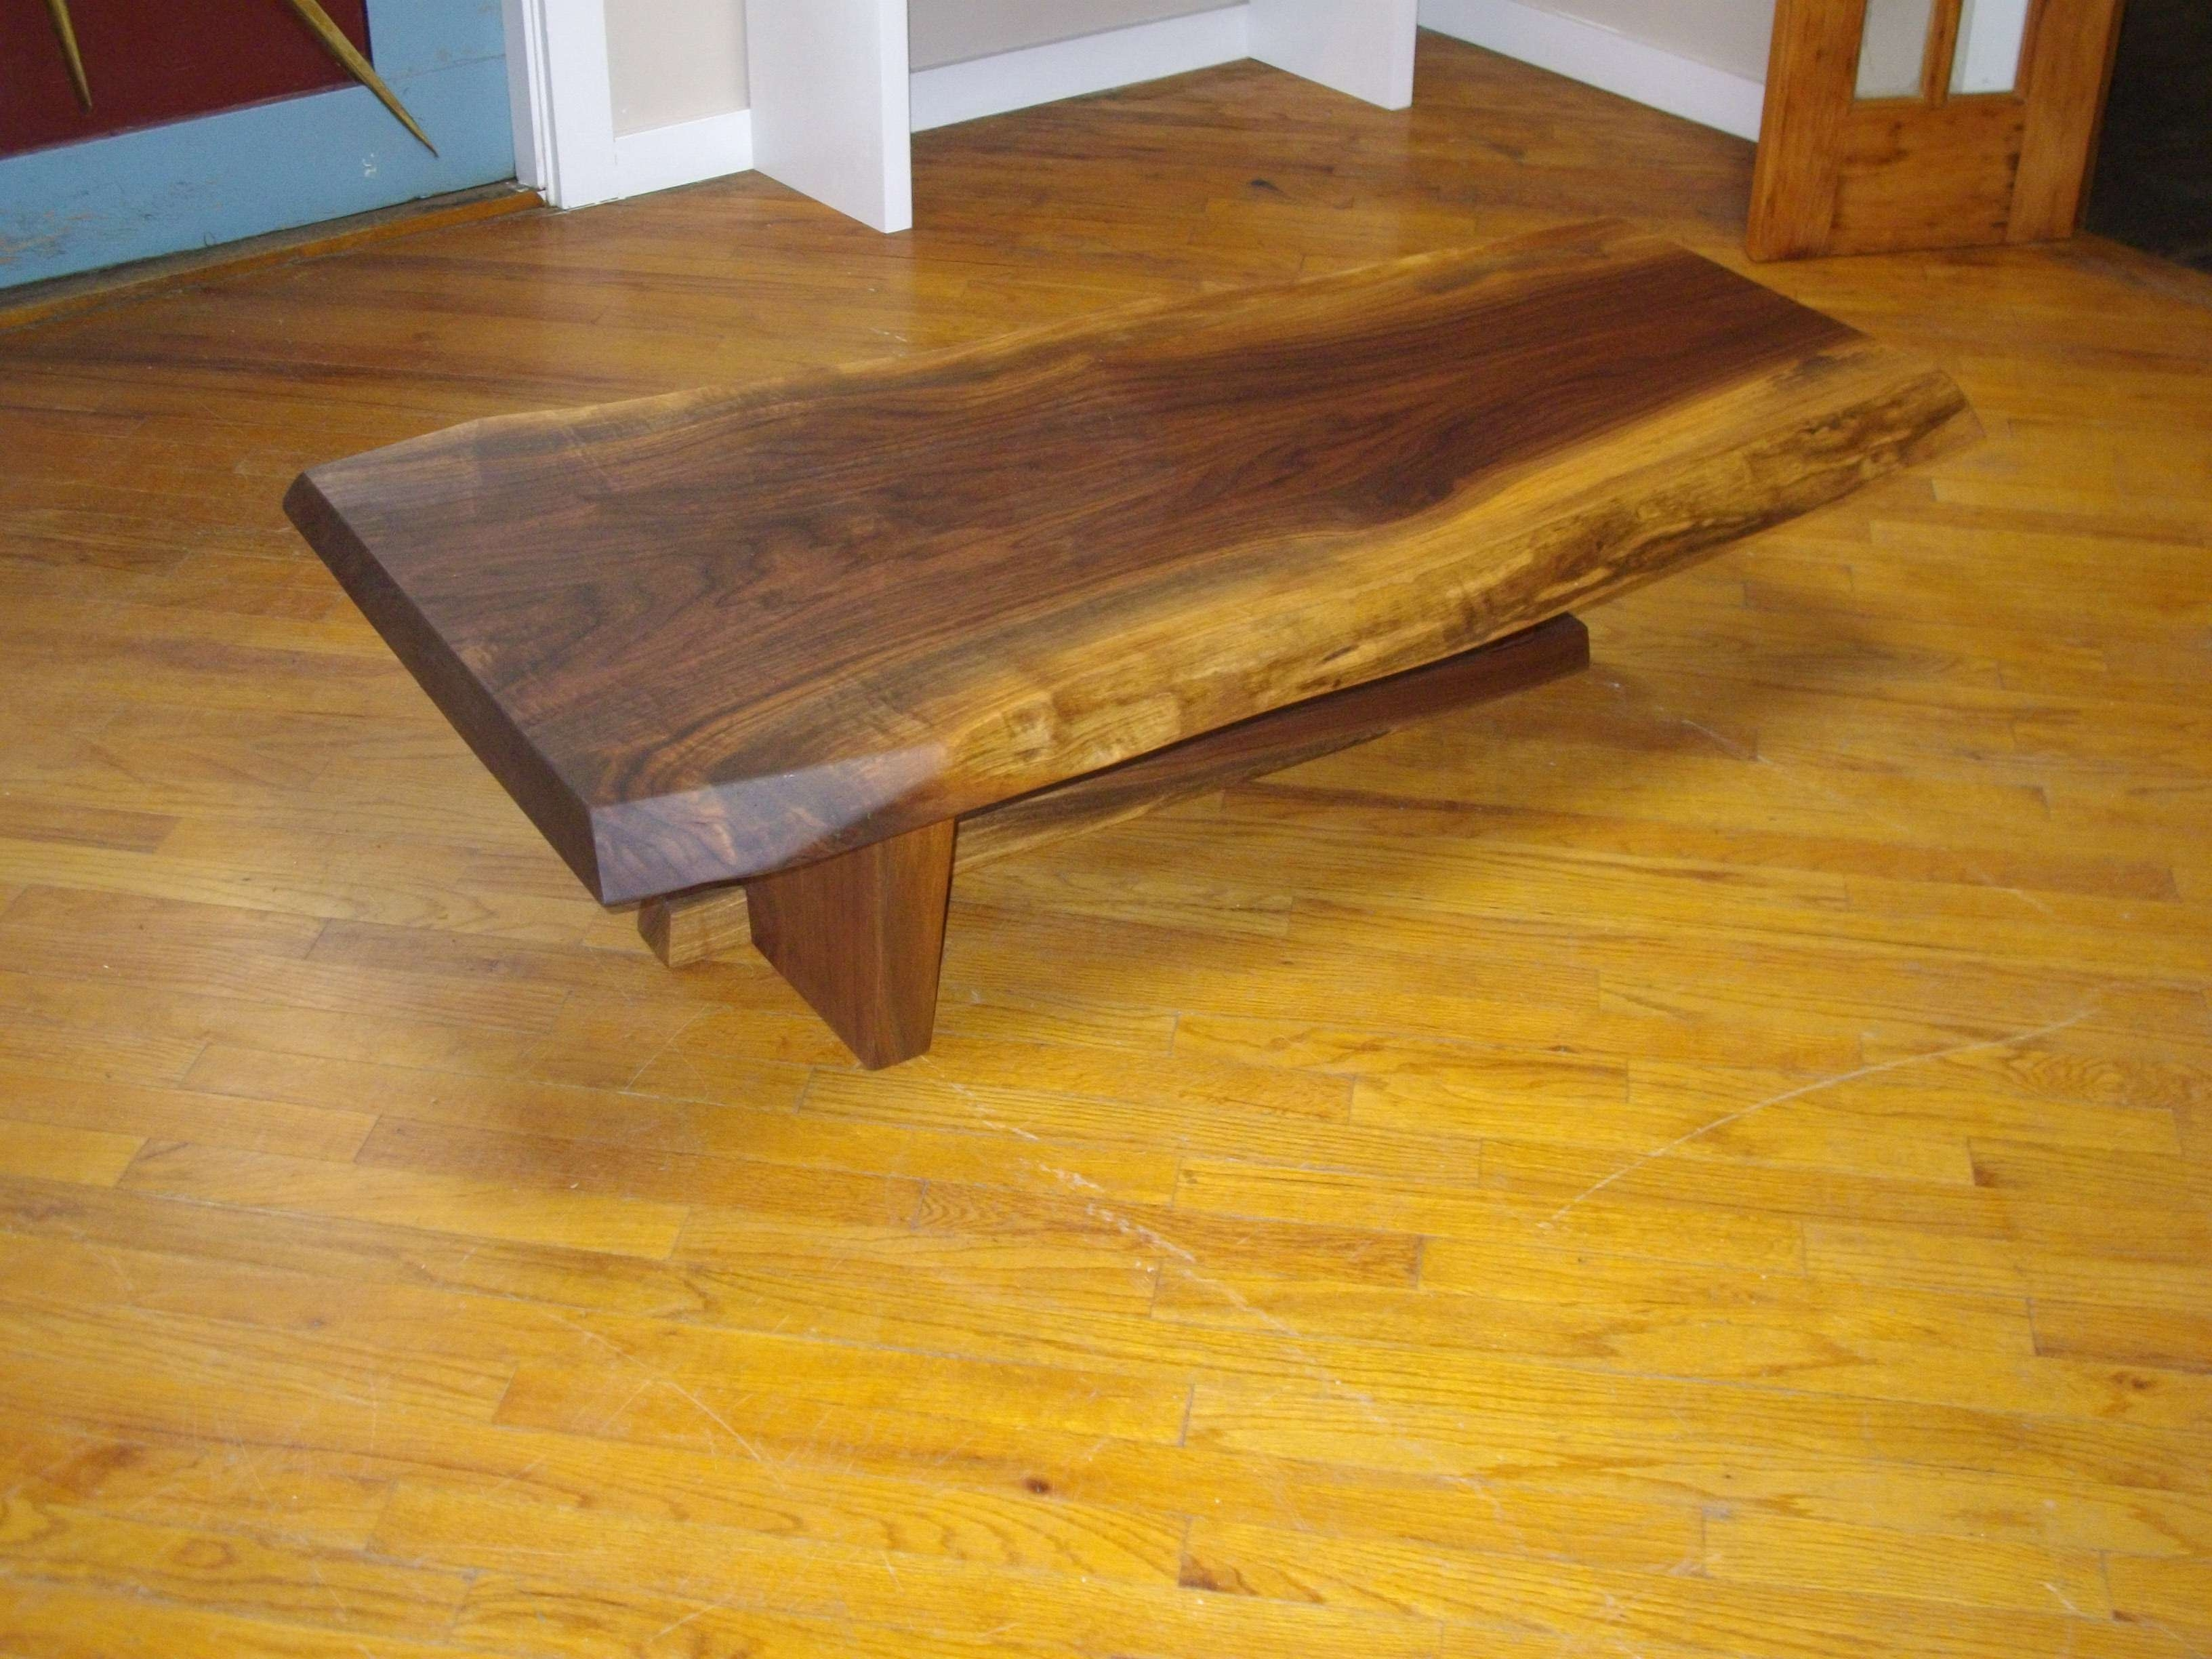 Newest Rustic Wooden Coffee Tables Pertaining To Upscale Drawers Coffee Tables Also Low Rustic Wood Coffee Table (Gallery 13 of 20)